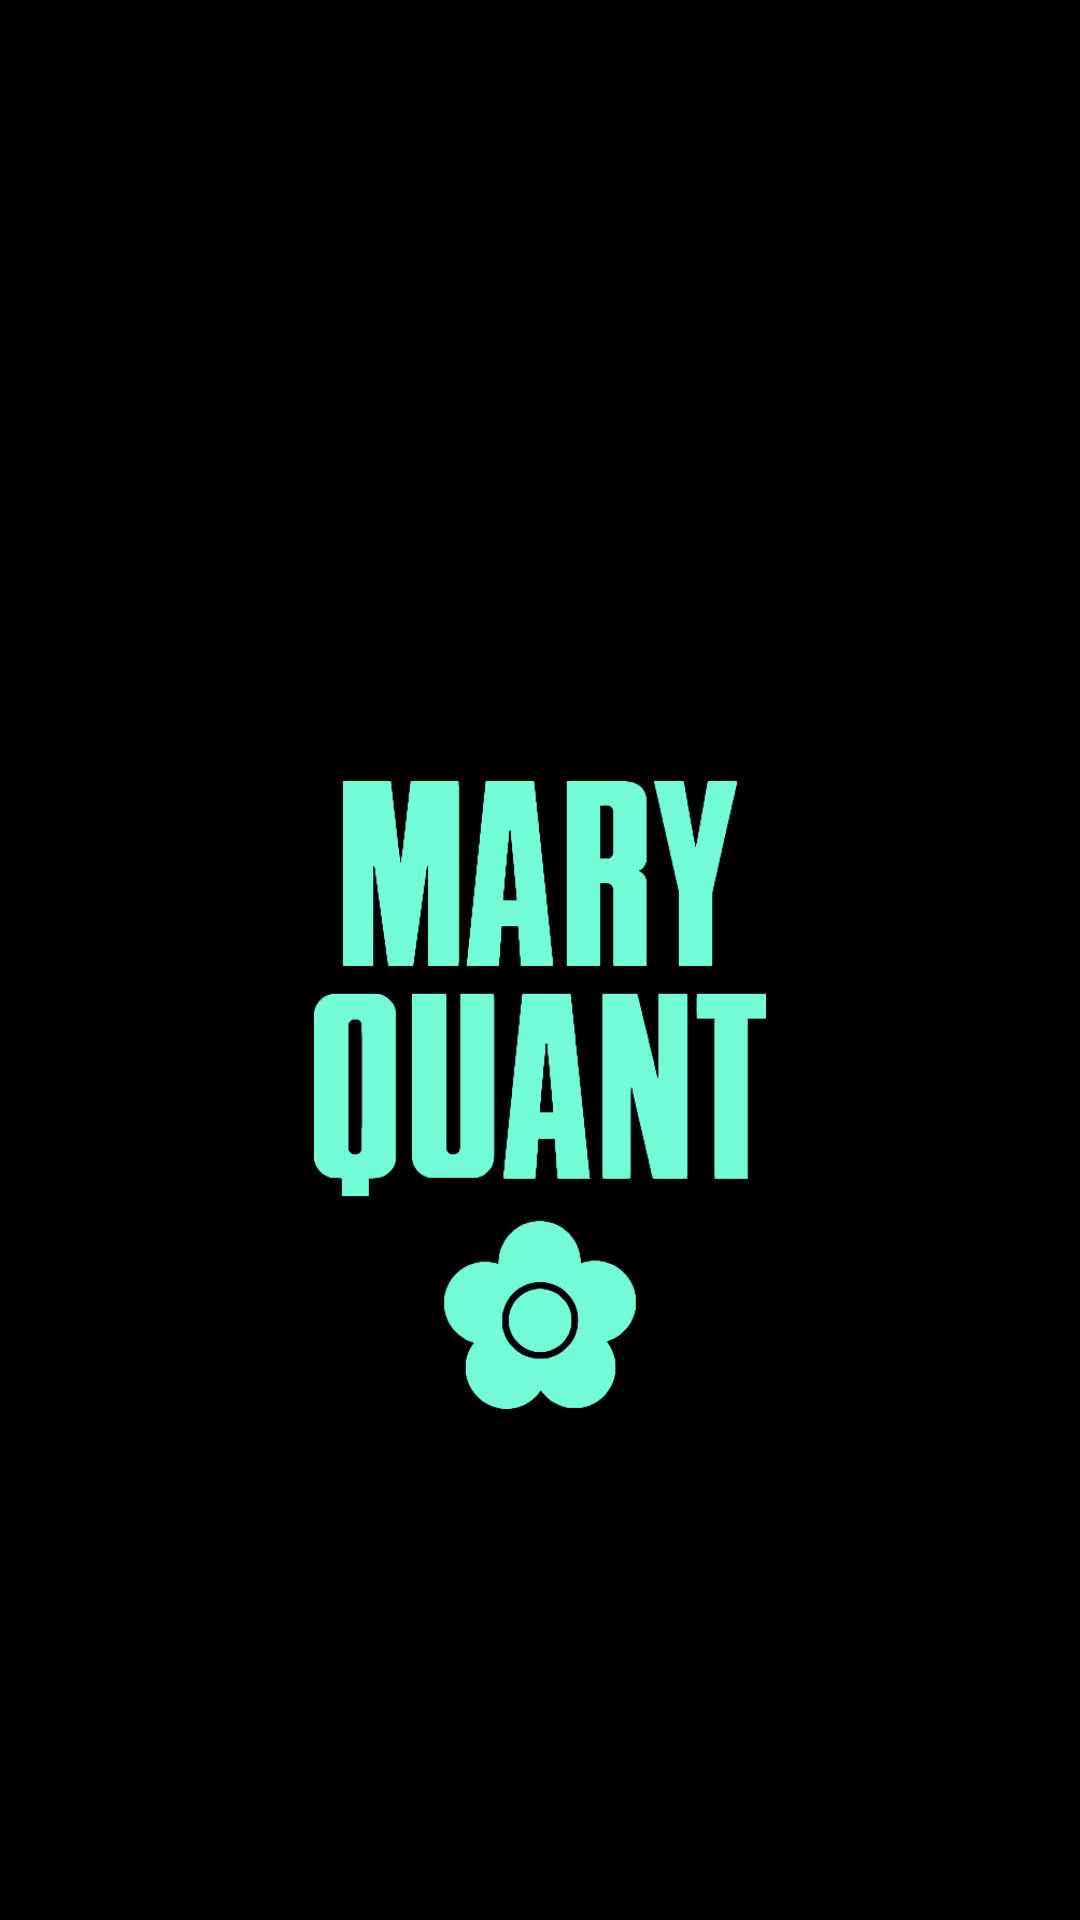 maryquant i09 - 20 MARY QUANT HQ Smartphone Wallpaper Collection